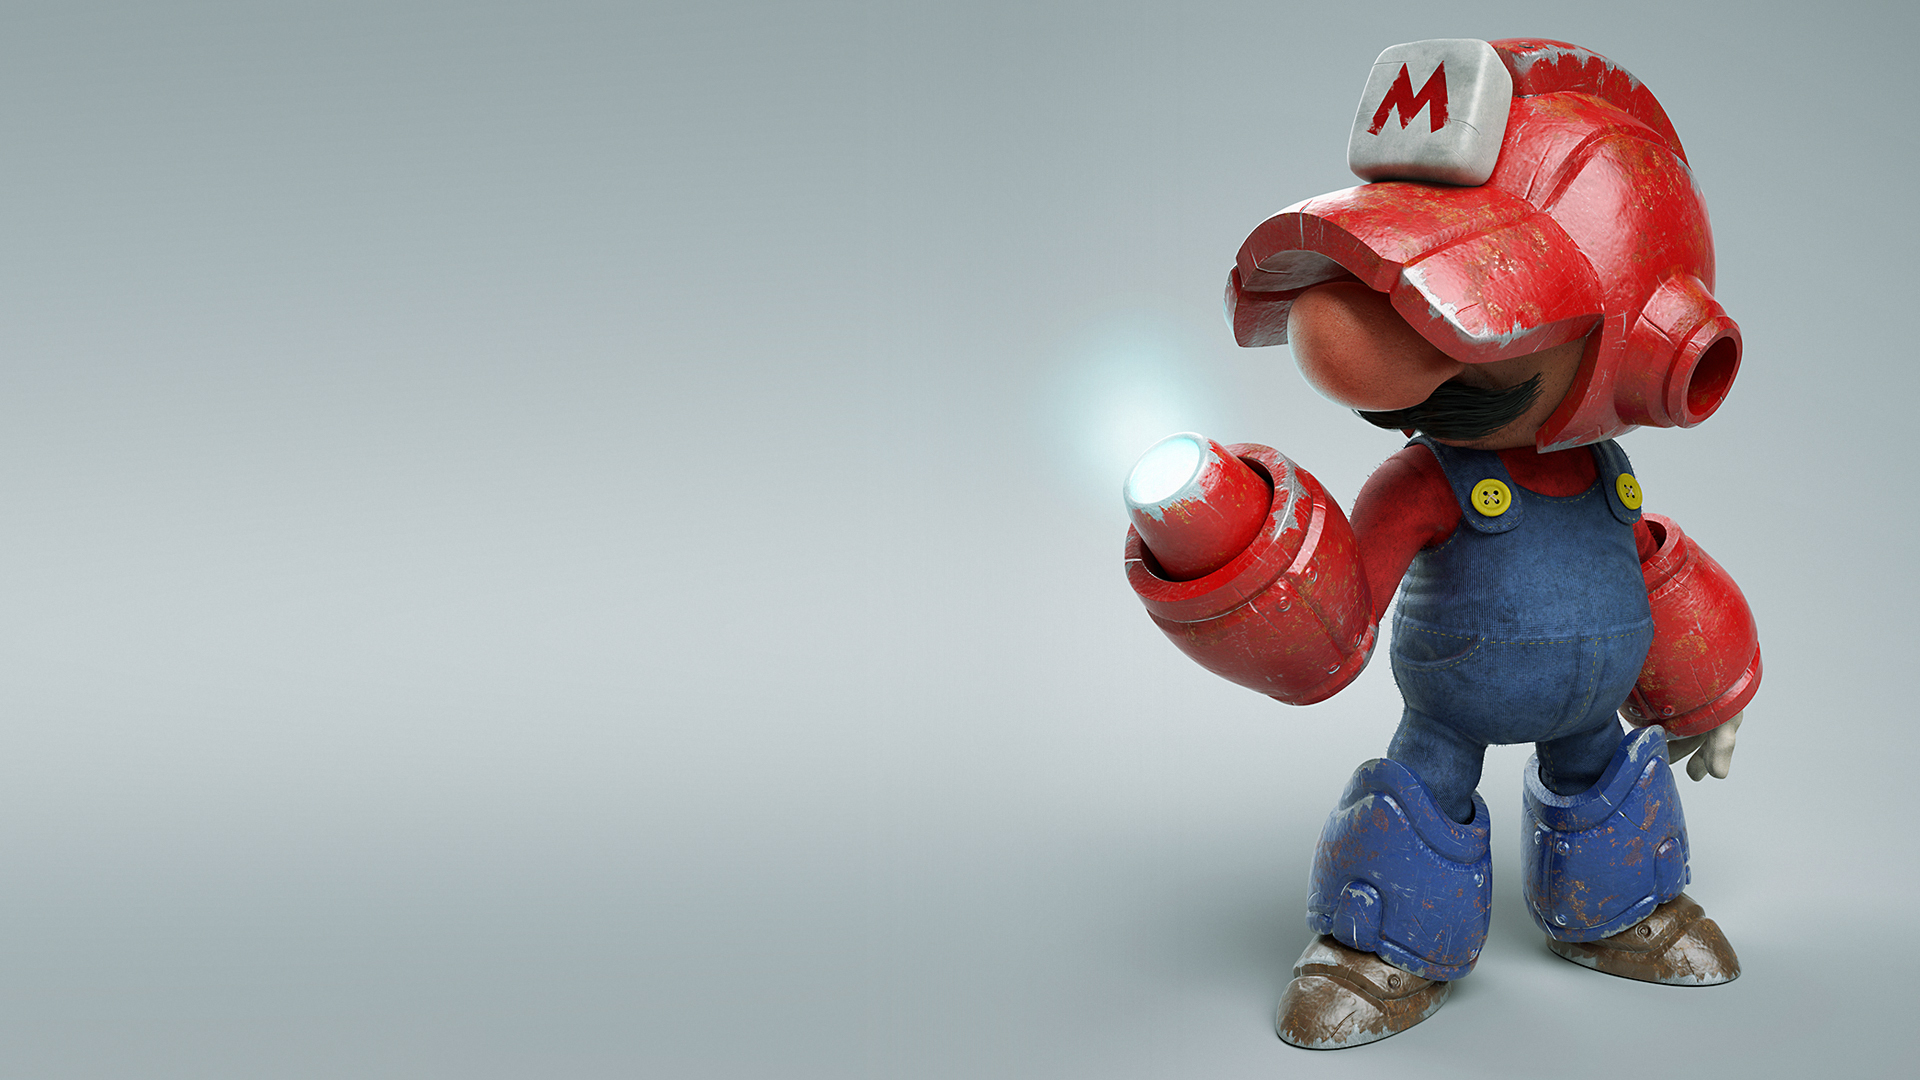 mega mario, hd cartoons, 4k wallpapers, images, backgrounds, photos